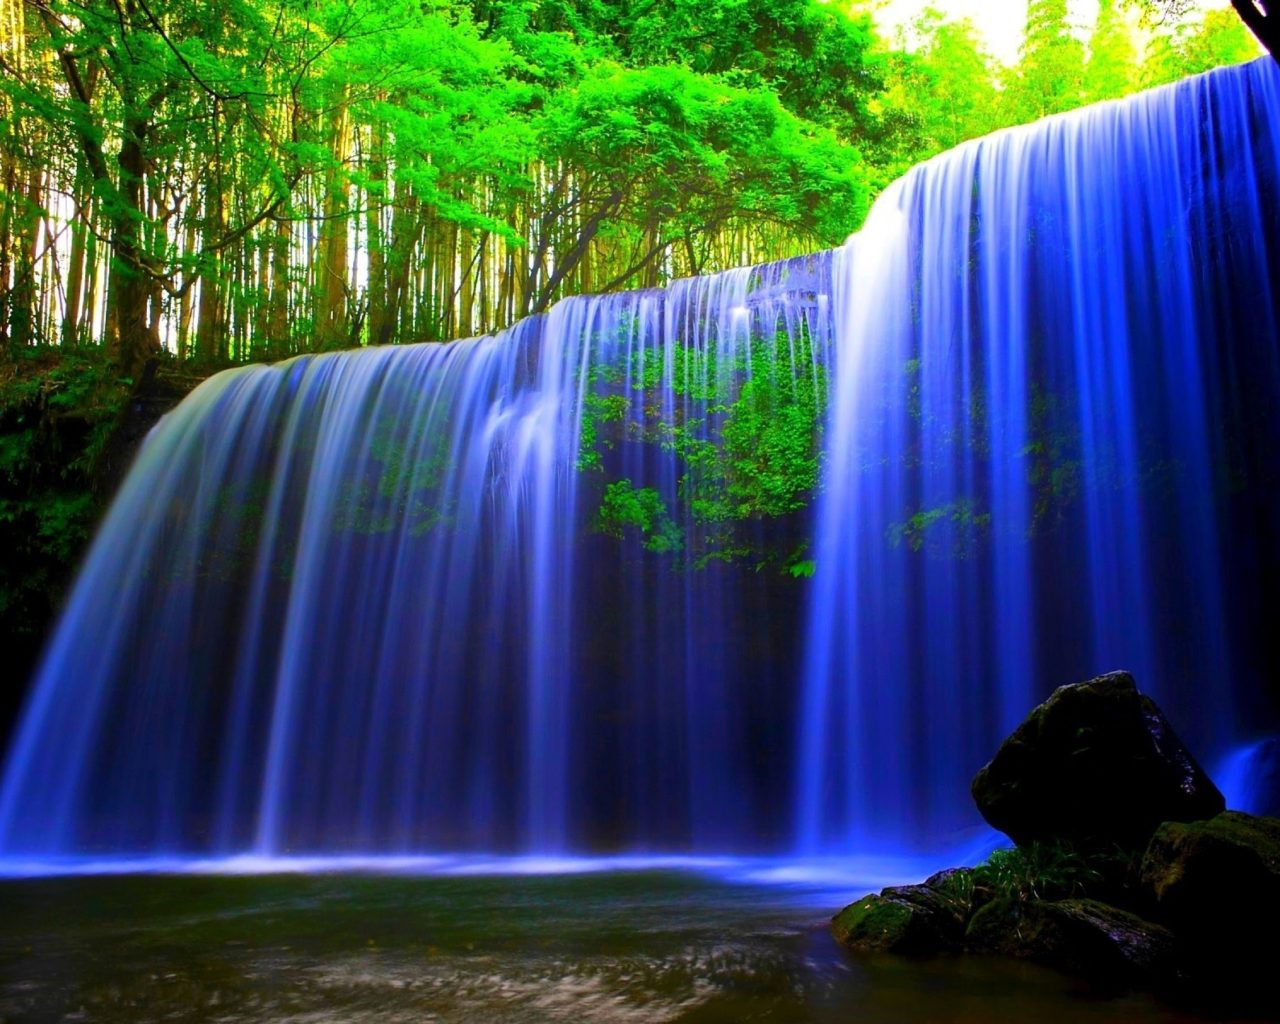 Full Screen Desktop Fall Wallpaper Glowing Blue Waterfall Wallpaper Hd Wallpaper